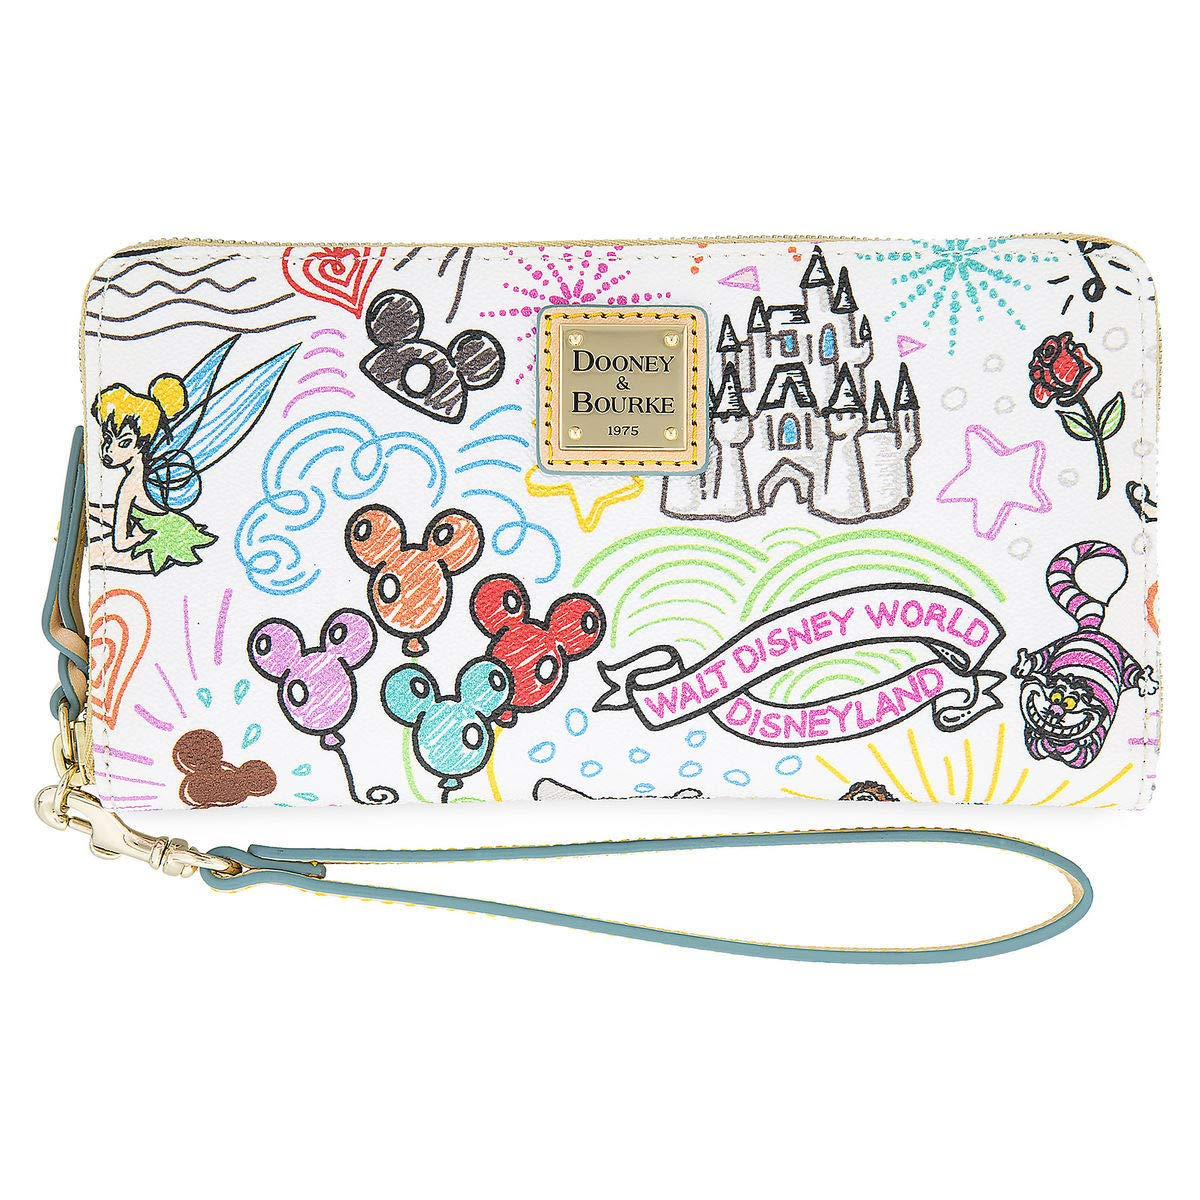 Disney Parks Sketch Mickey & Minnie Zip Wallet by Dooney & Bourke Wristlet by Disney Parks (Image #1)